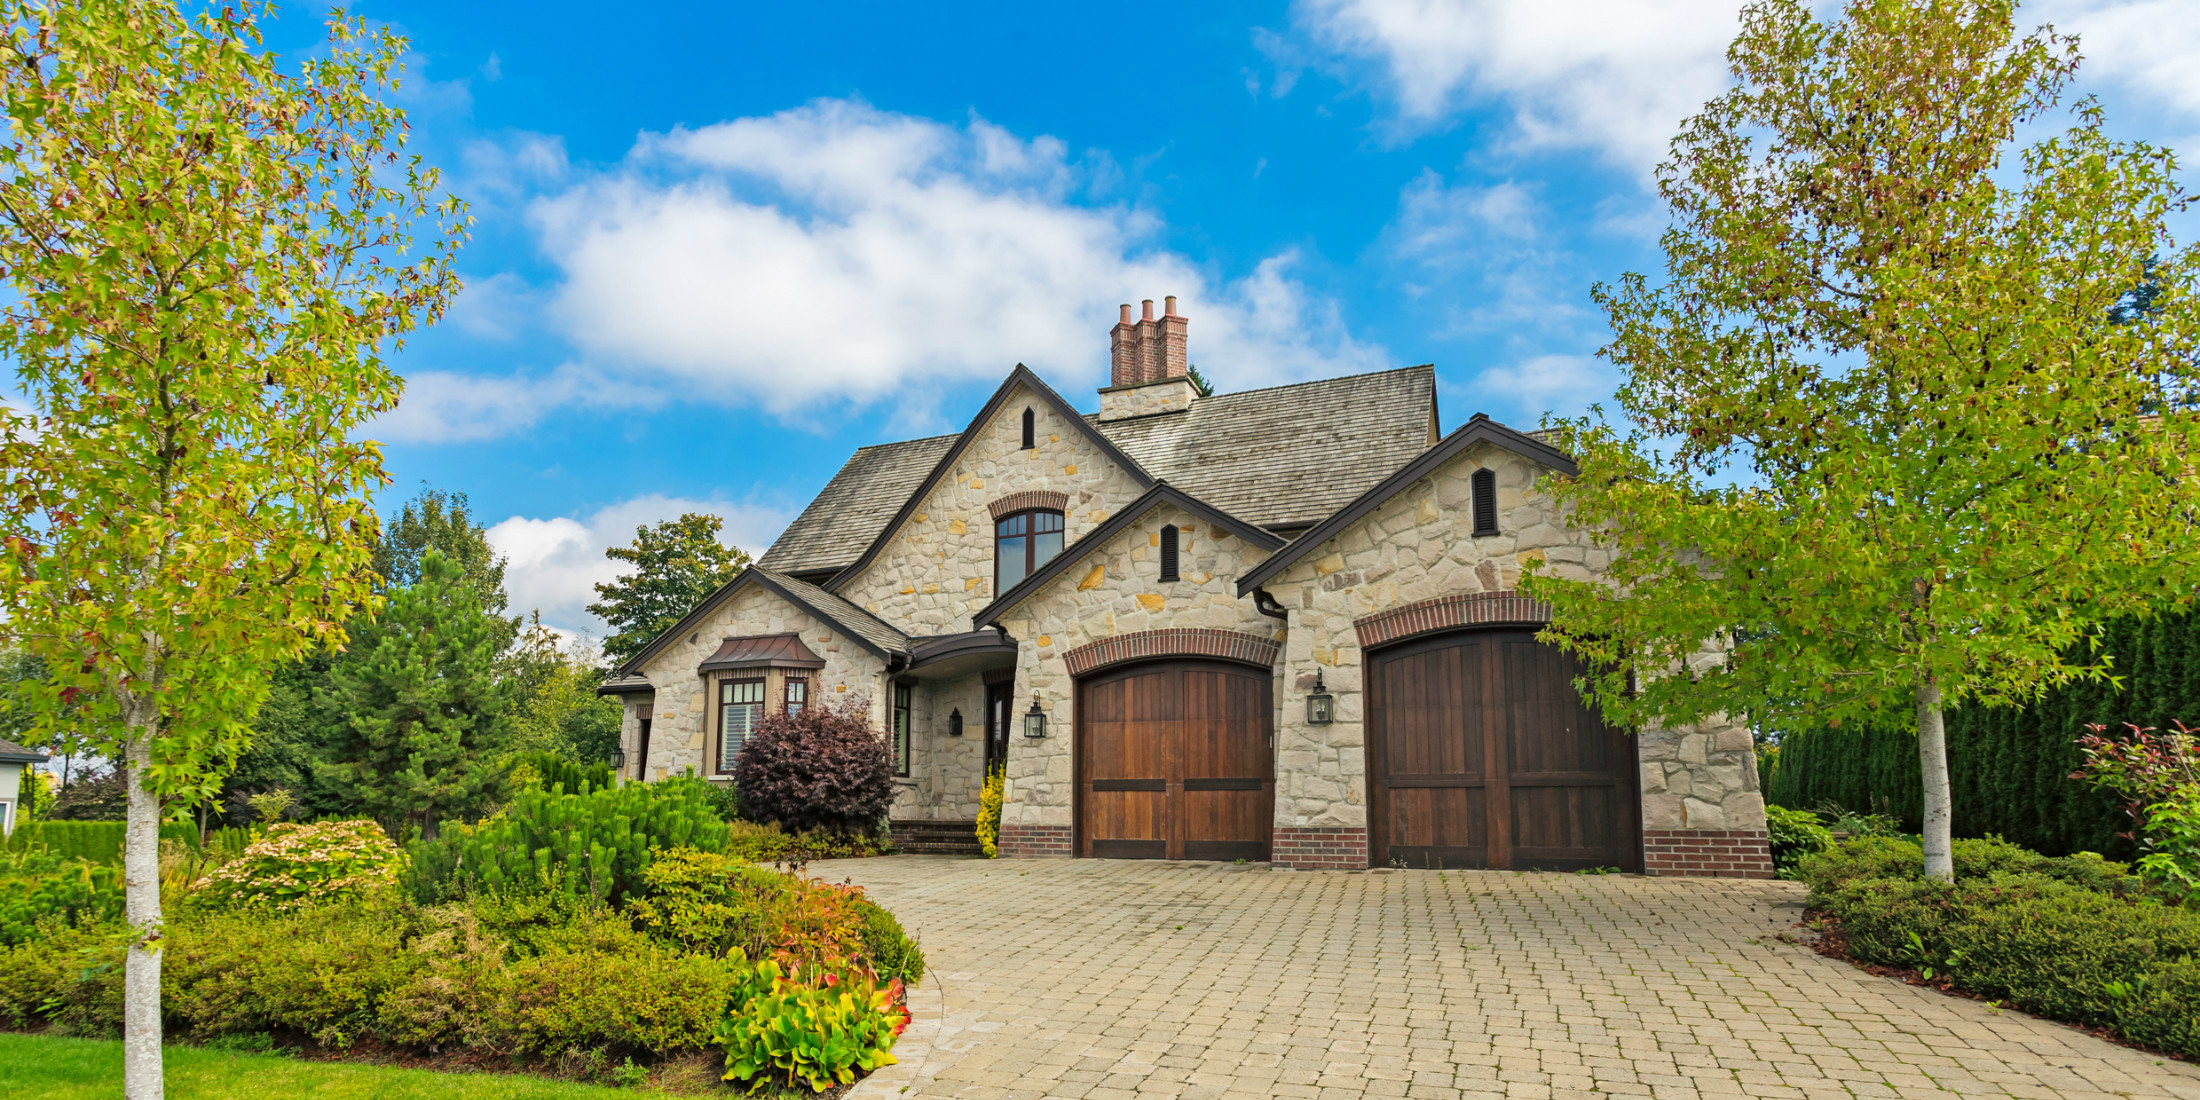 San Antonio Foreclosures And Bank Owned Homes For Sale